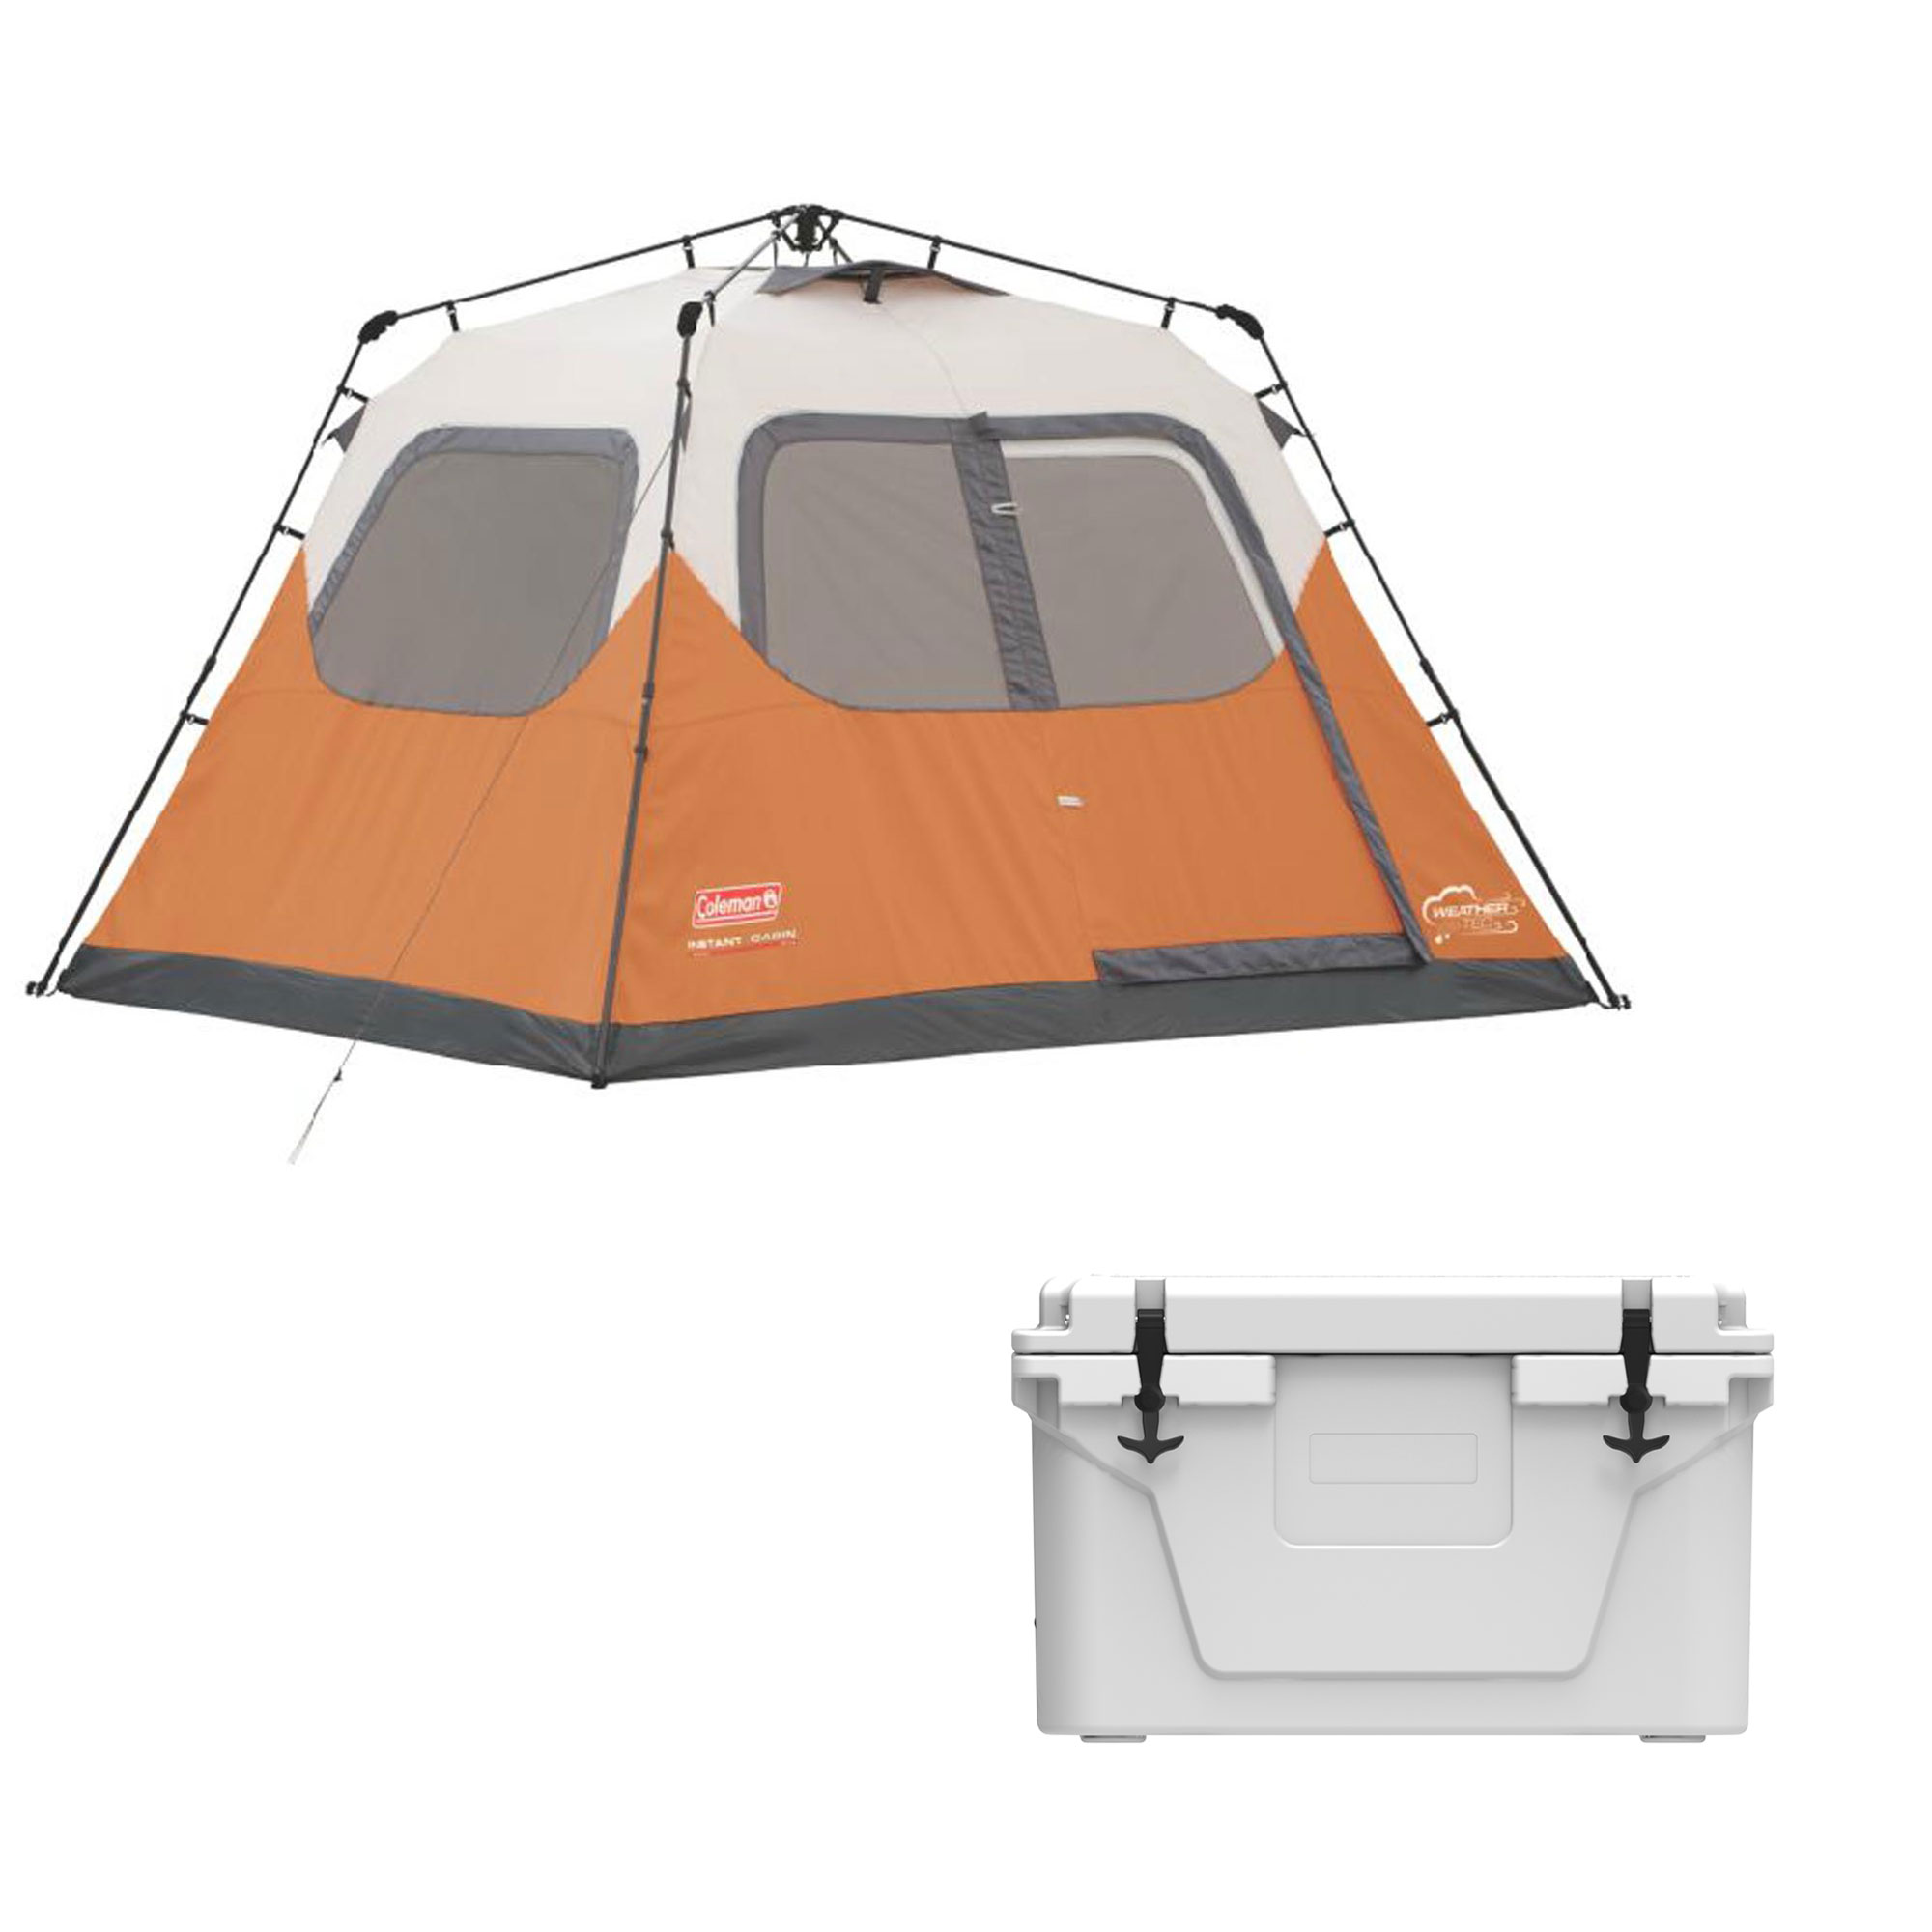 Coleman 6 Person 10' x 9' Family Camping Instant Tent and Uriah Products Cooler